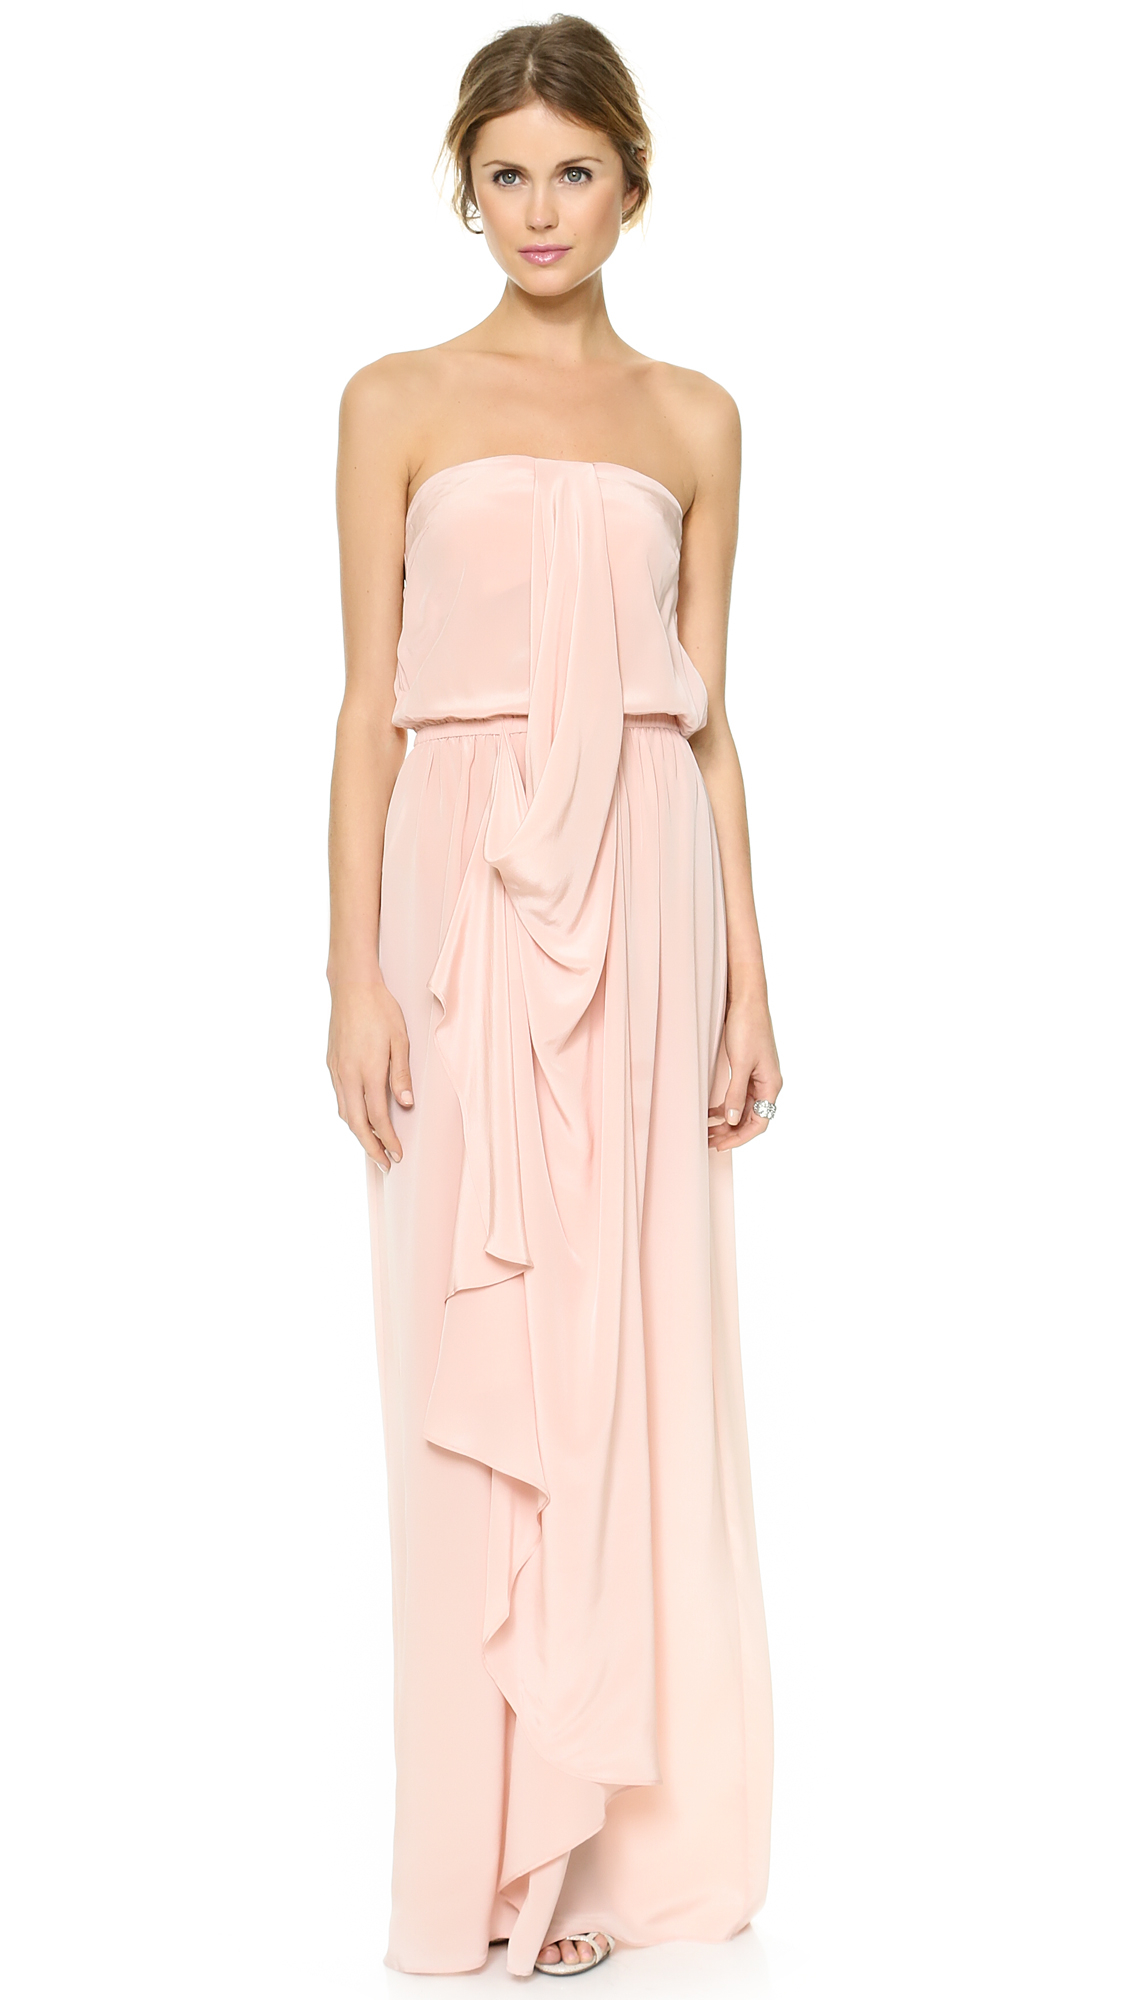 Zimmermann Strapless Draped Maxi Dress in Pink (Rosewater ...